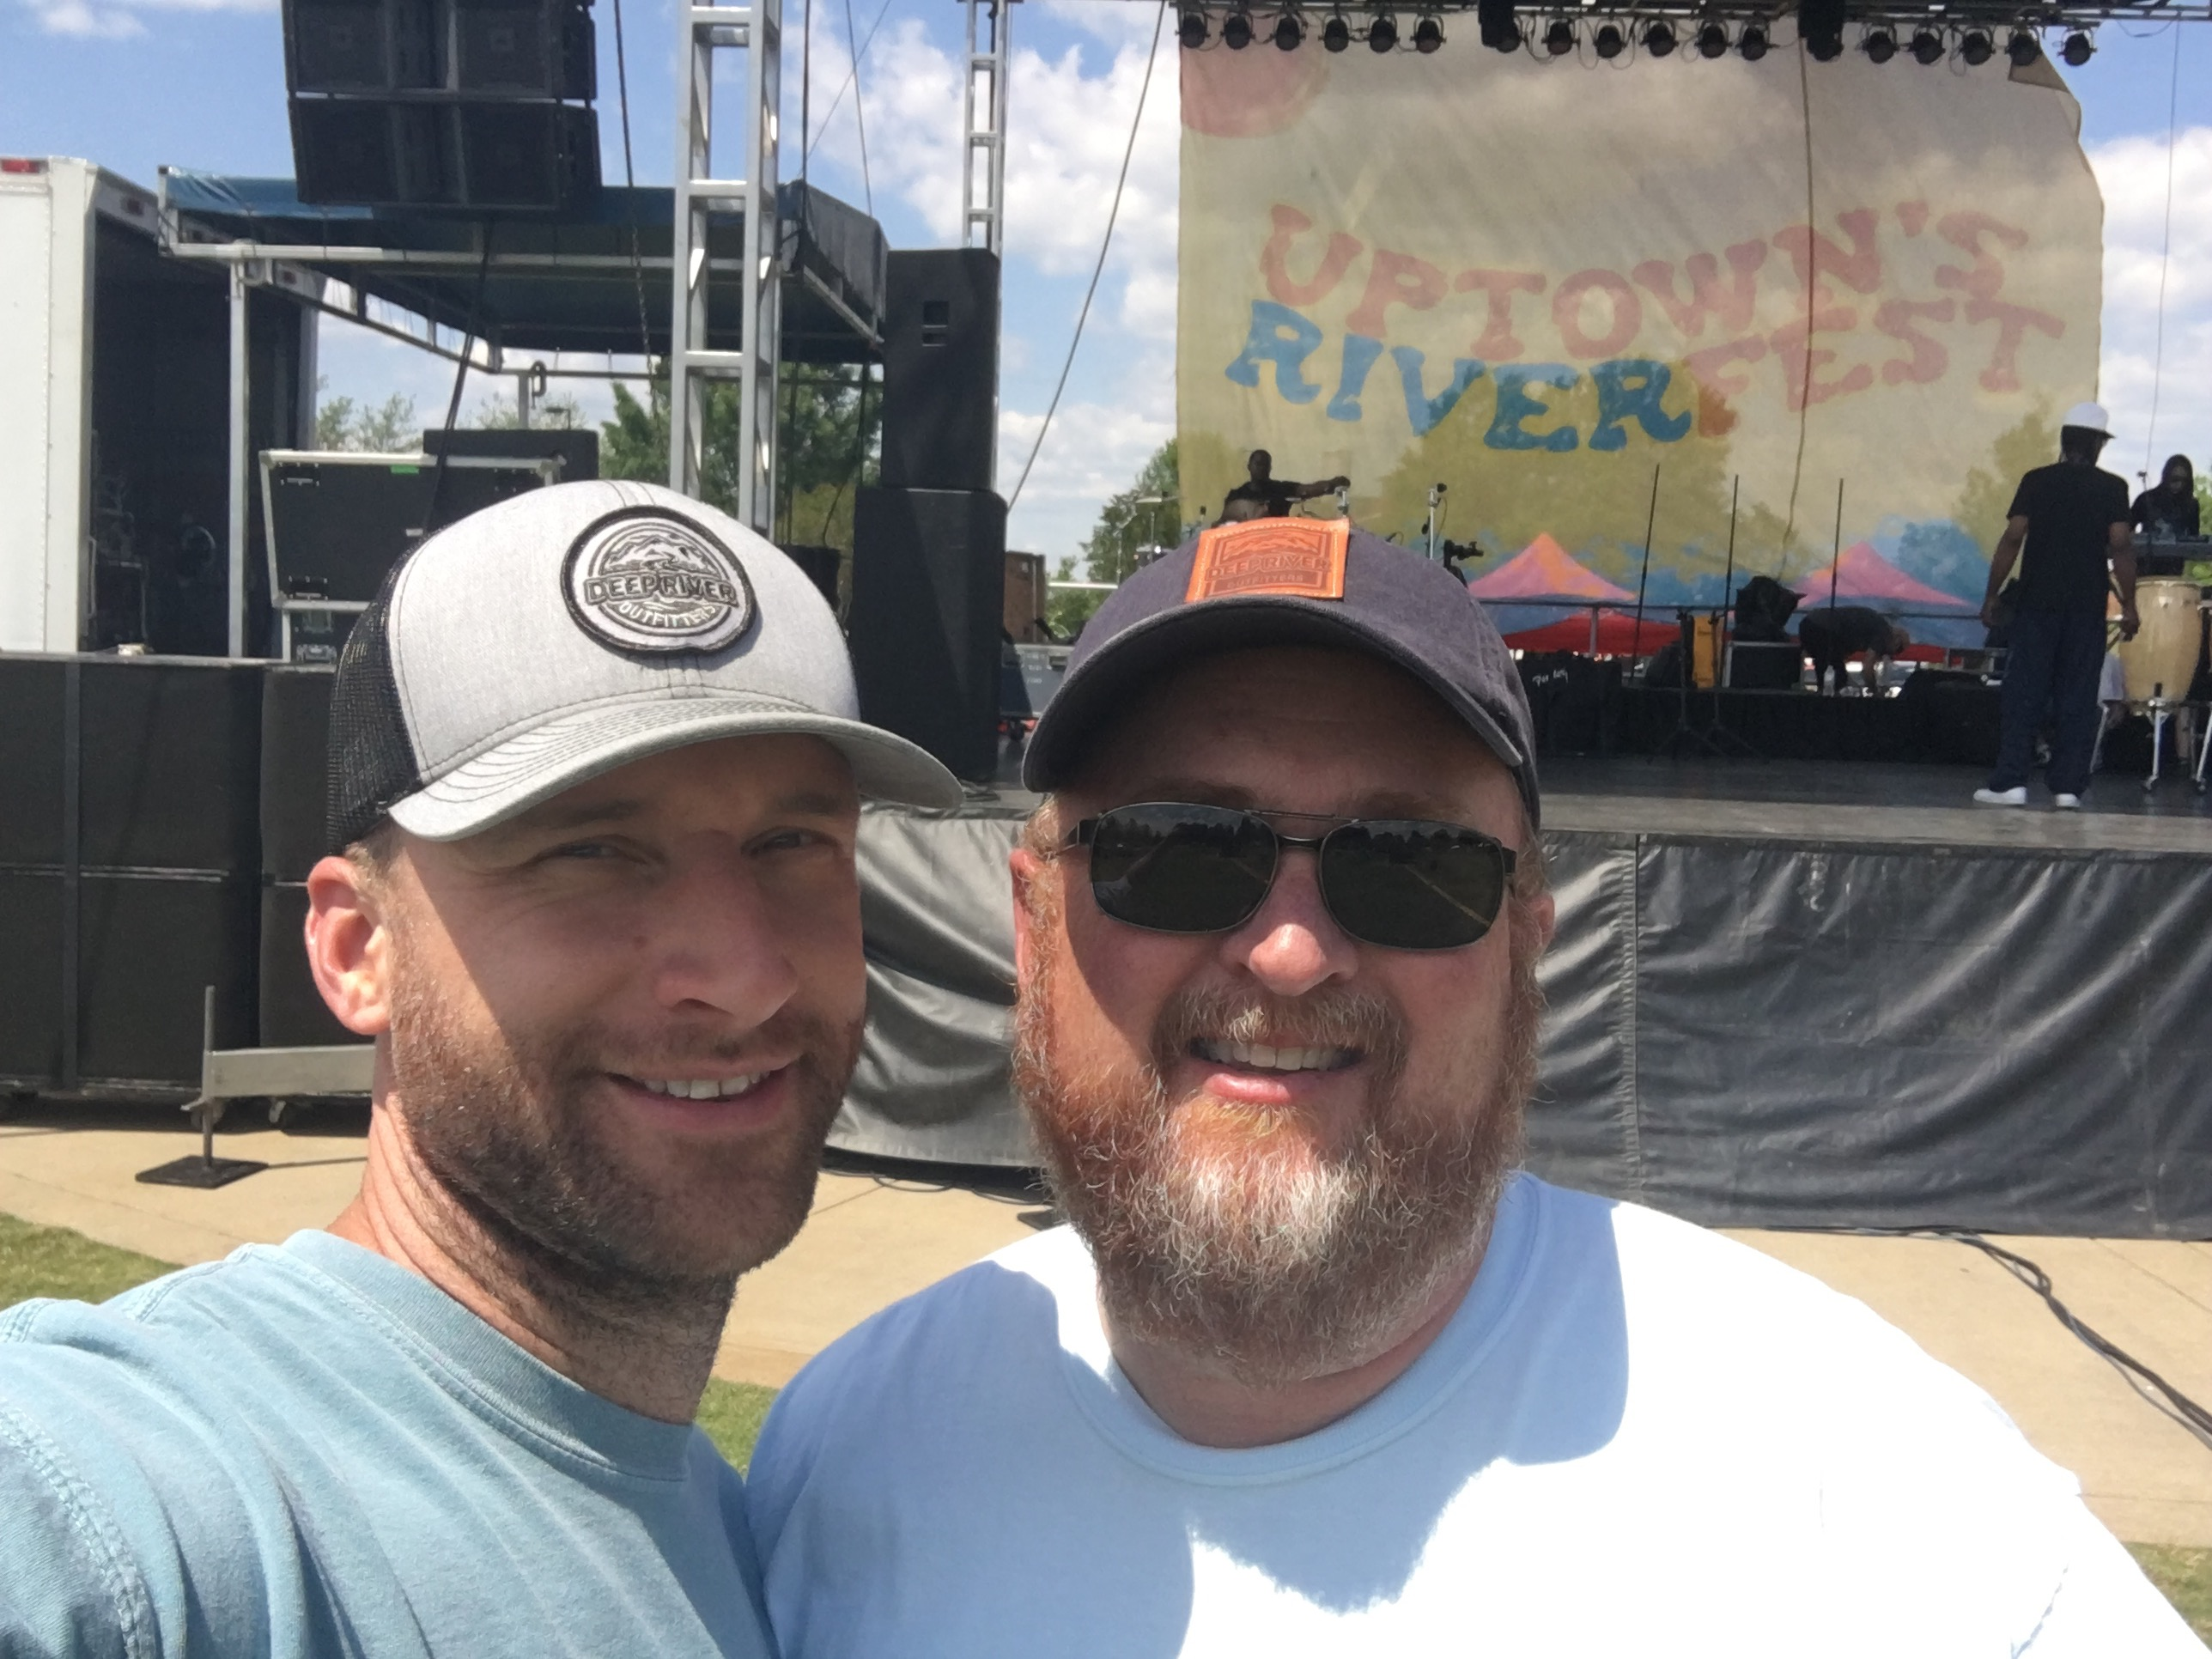 Matt & Keith at Uptown RiverFest